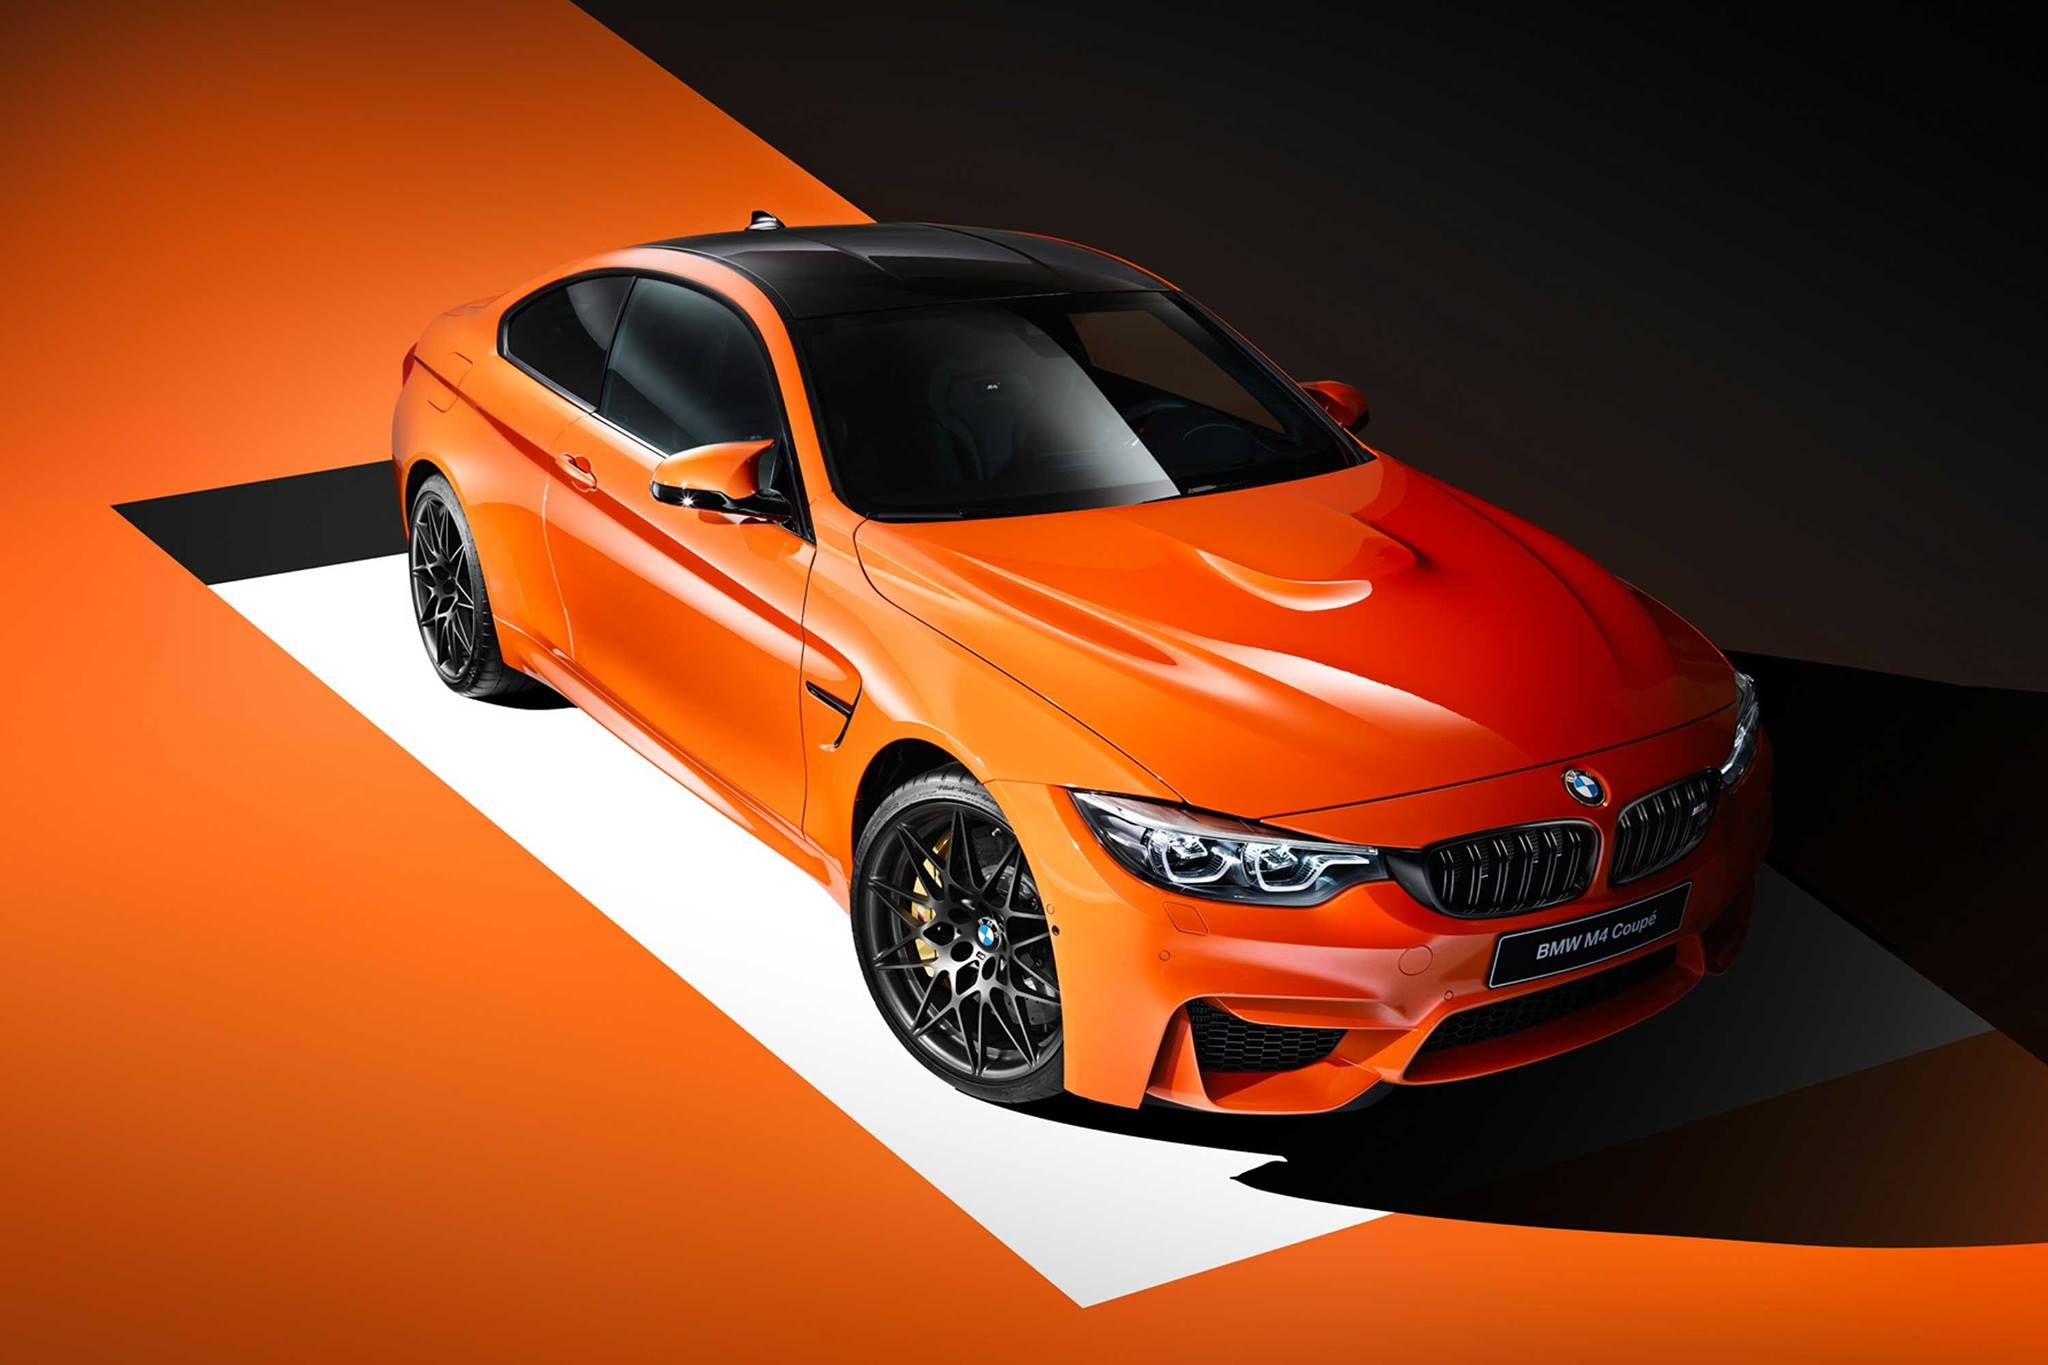 bmw m presents bmw m4 coupe individual fire orange bmw m4 bmw m4 coupe m4 coupe bmw m4 coupe individual fire orange